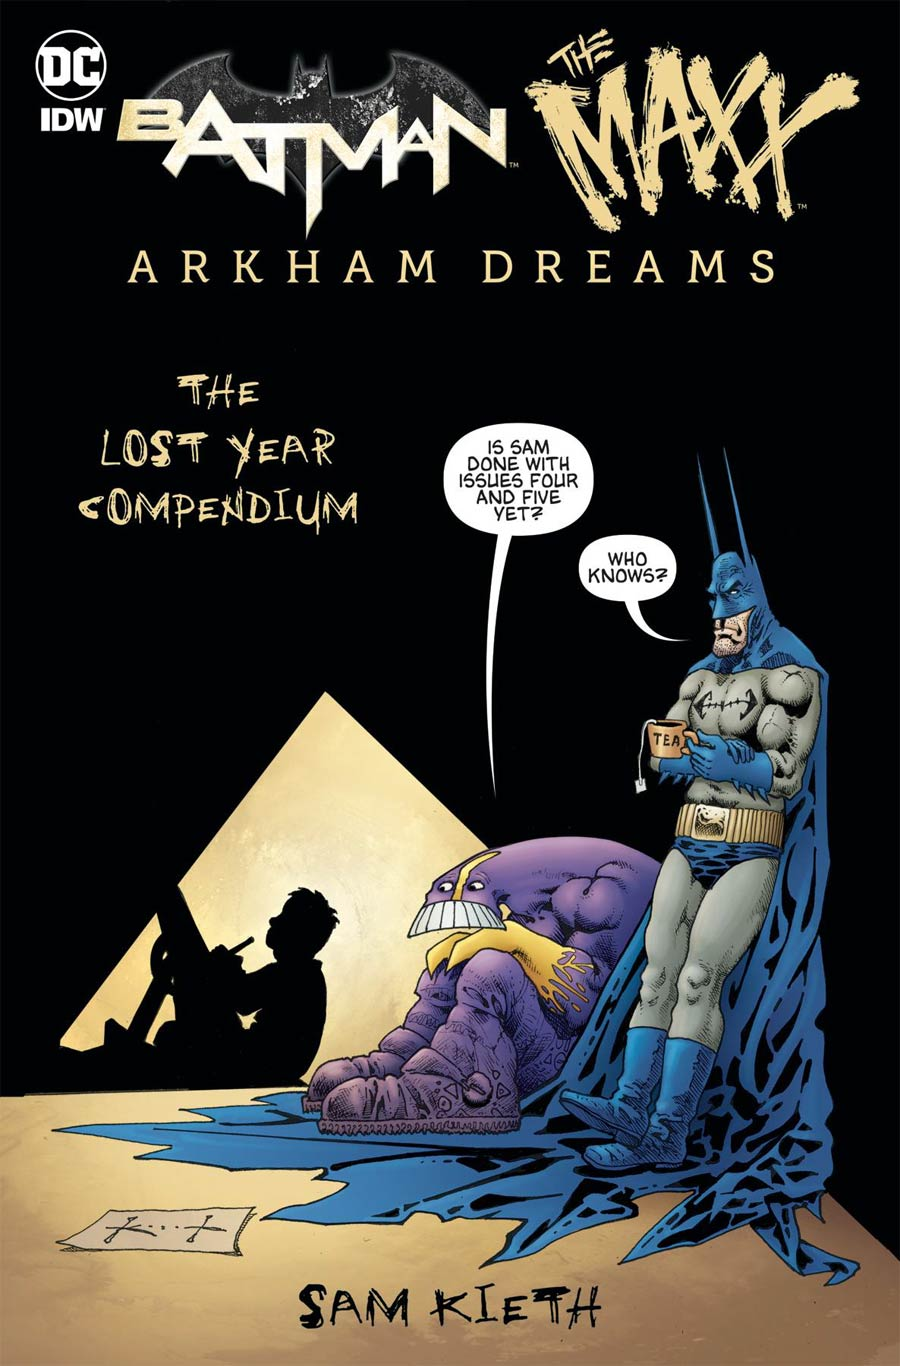 Batman / The Maxx: Arkham Dreams - Lost Year Compendium #1